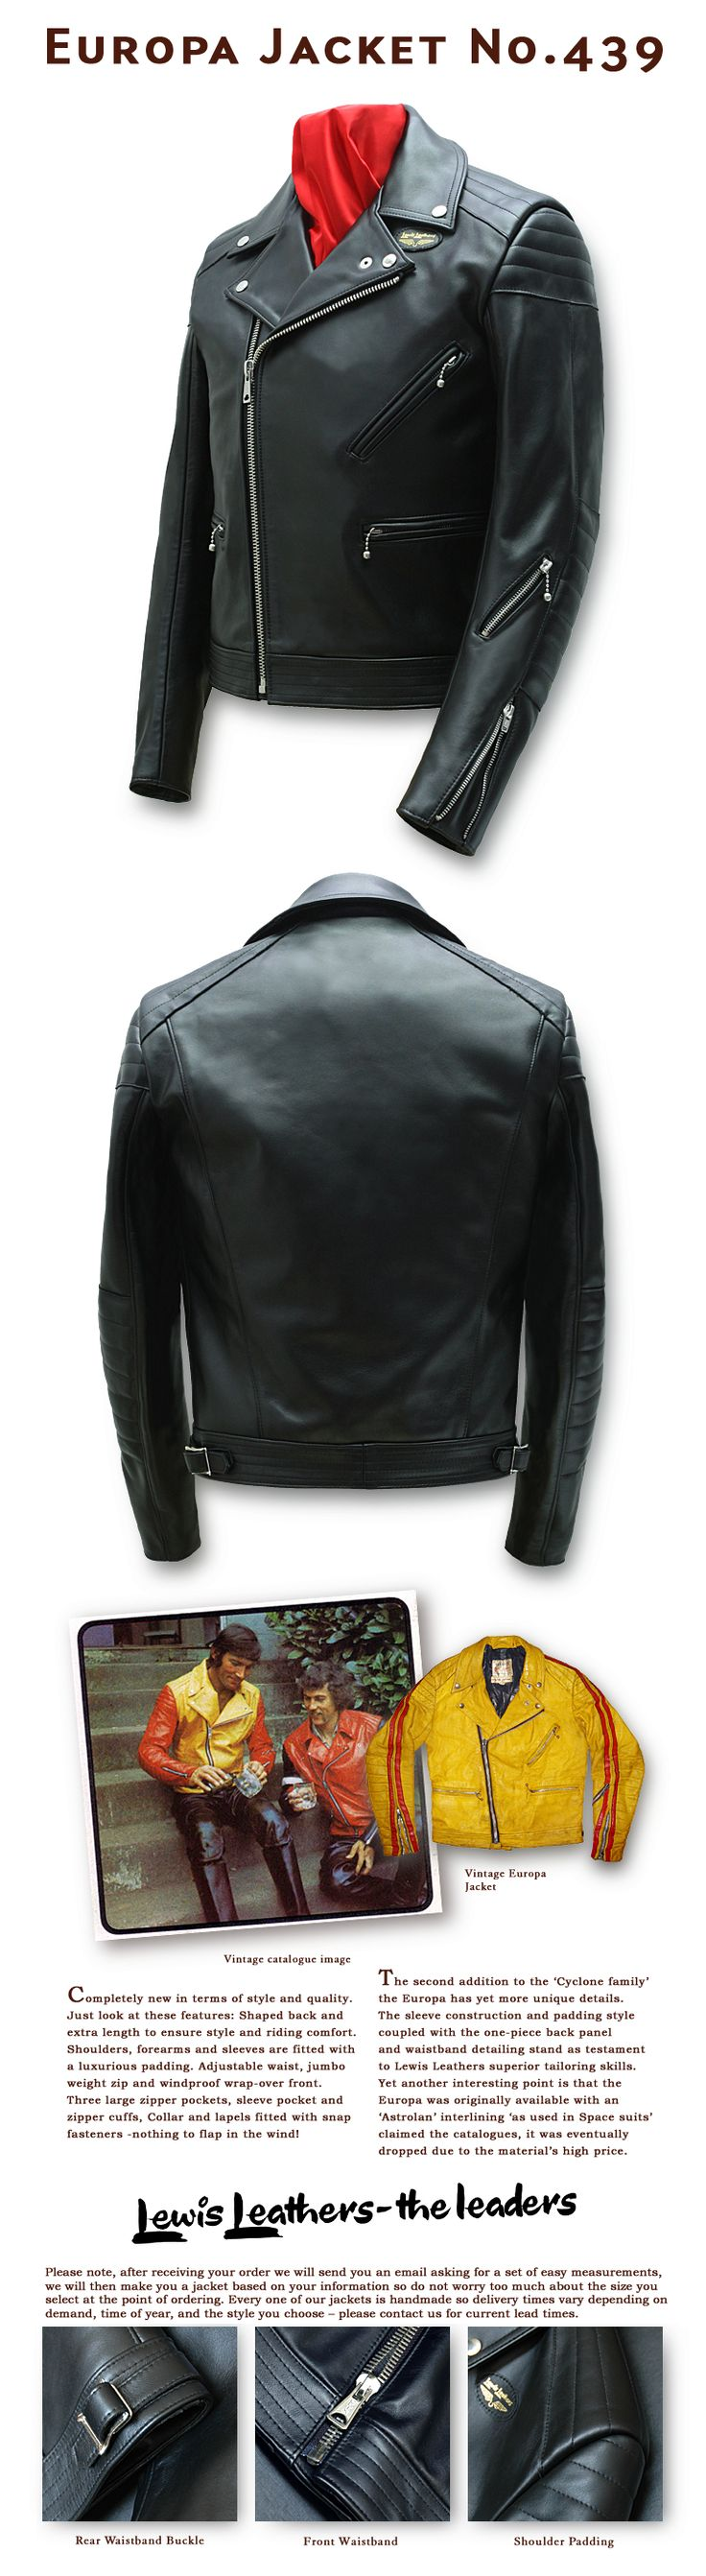 863de4079dba674cbb3a01d009d02164 motorcycle helmets bomber jackets 11 best clothes images on pinterest motorcycle jackets, rockers  at pacquiaovsvargaslive.co